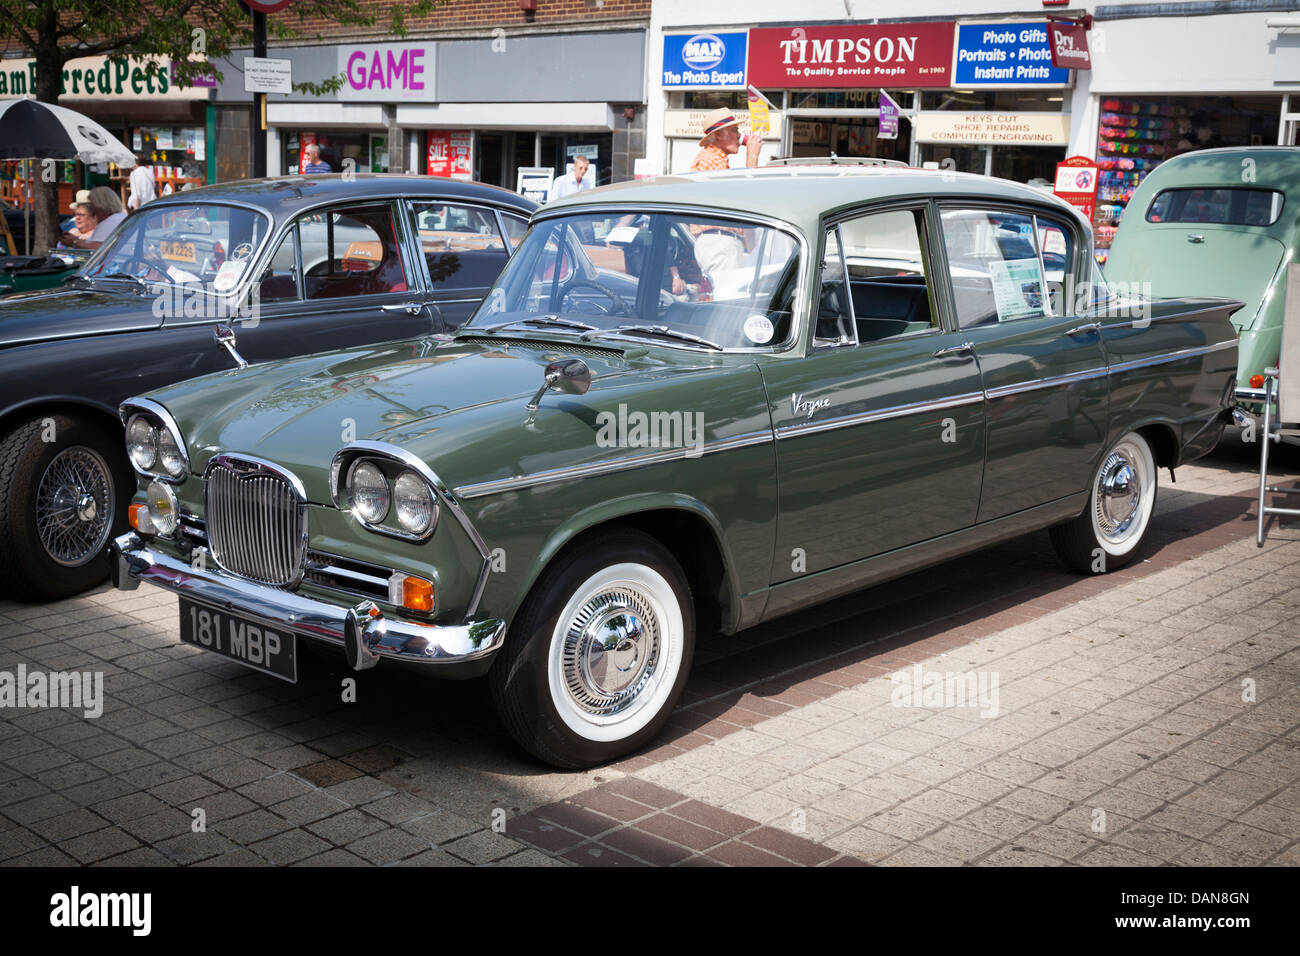 Classic Car Show Stock Photos & Classic Car Show Stock Images - Alamy